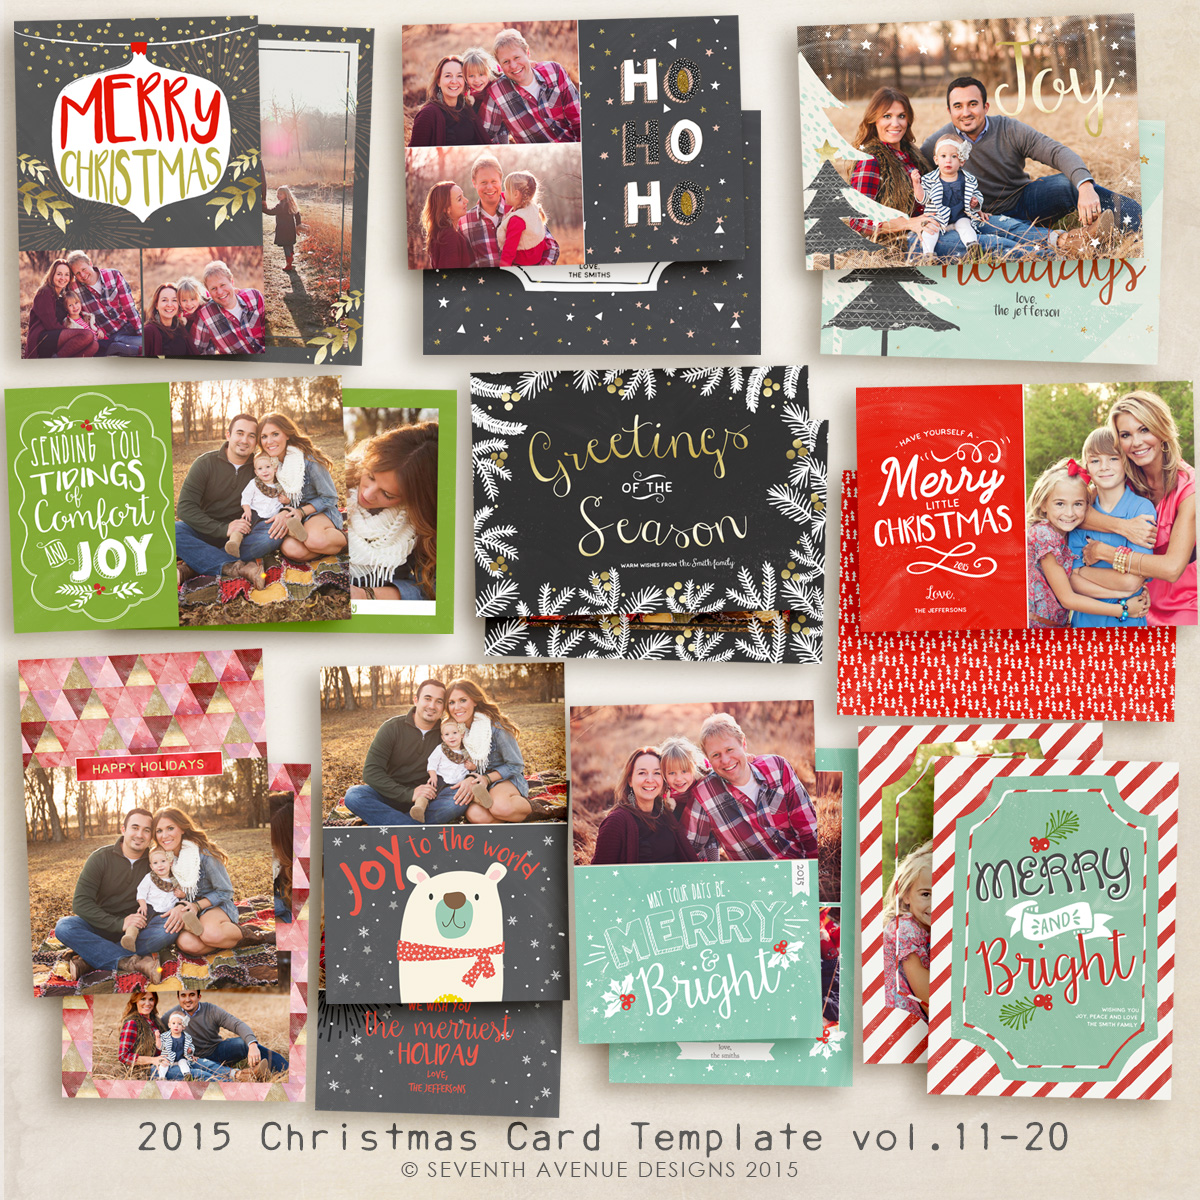 2015 Christmas Card Templates vol.11-20